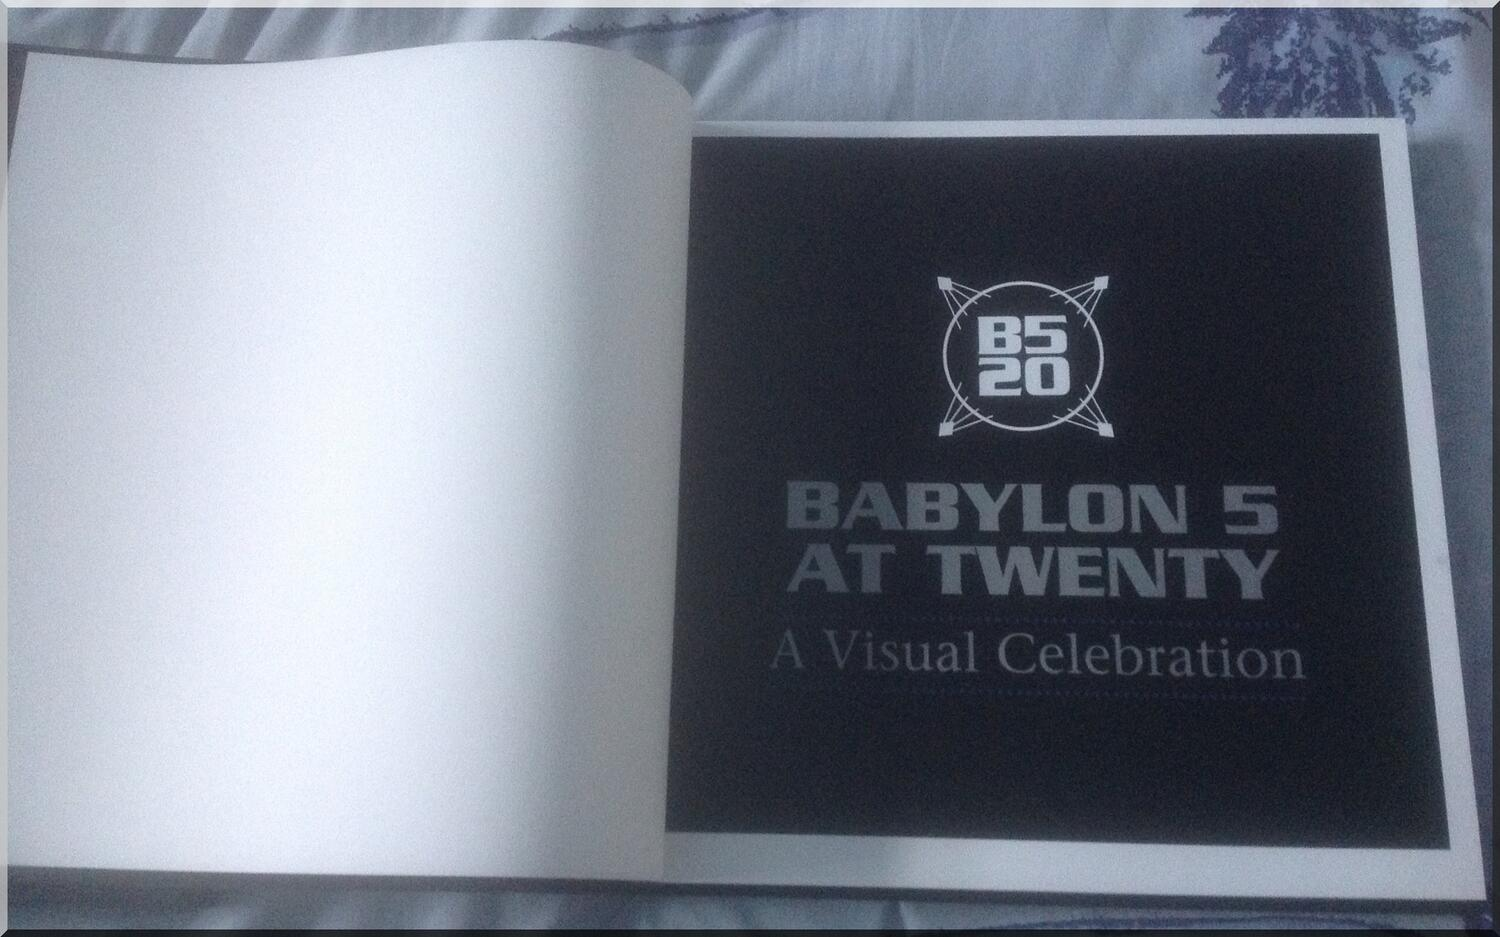 RT @Jarrak: Babylon 5 At Twenty A Visual Celebration is a truely outstanding publication, pricey but worth it:) #B5 http://t.co/xalRNbLERy